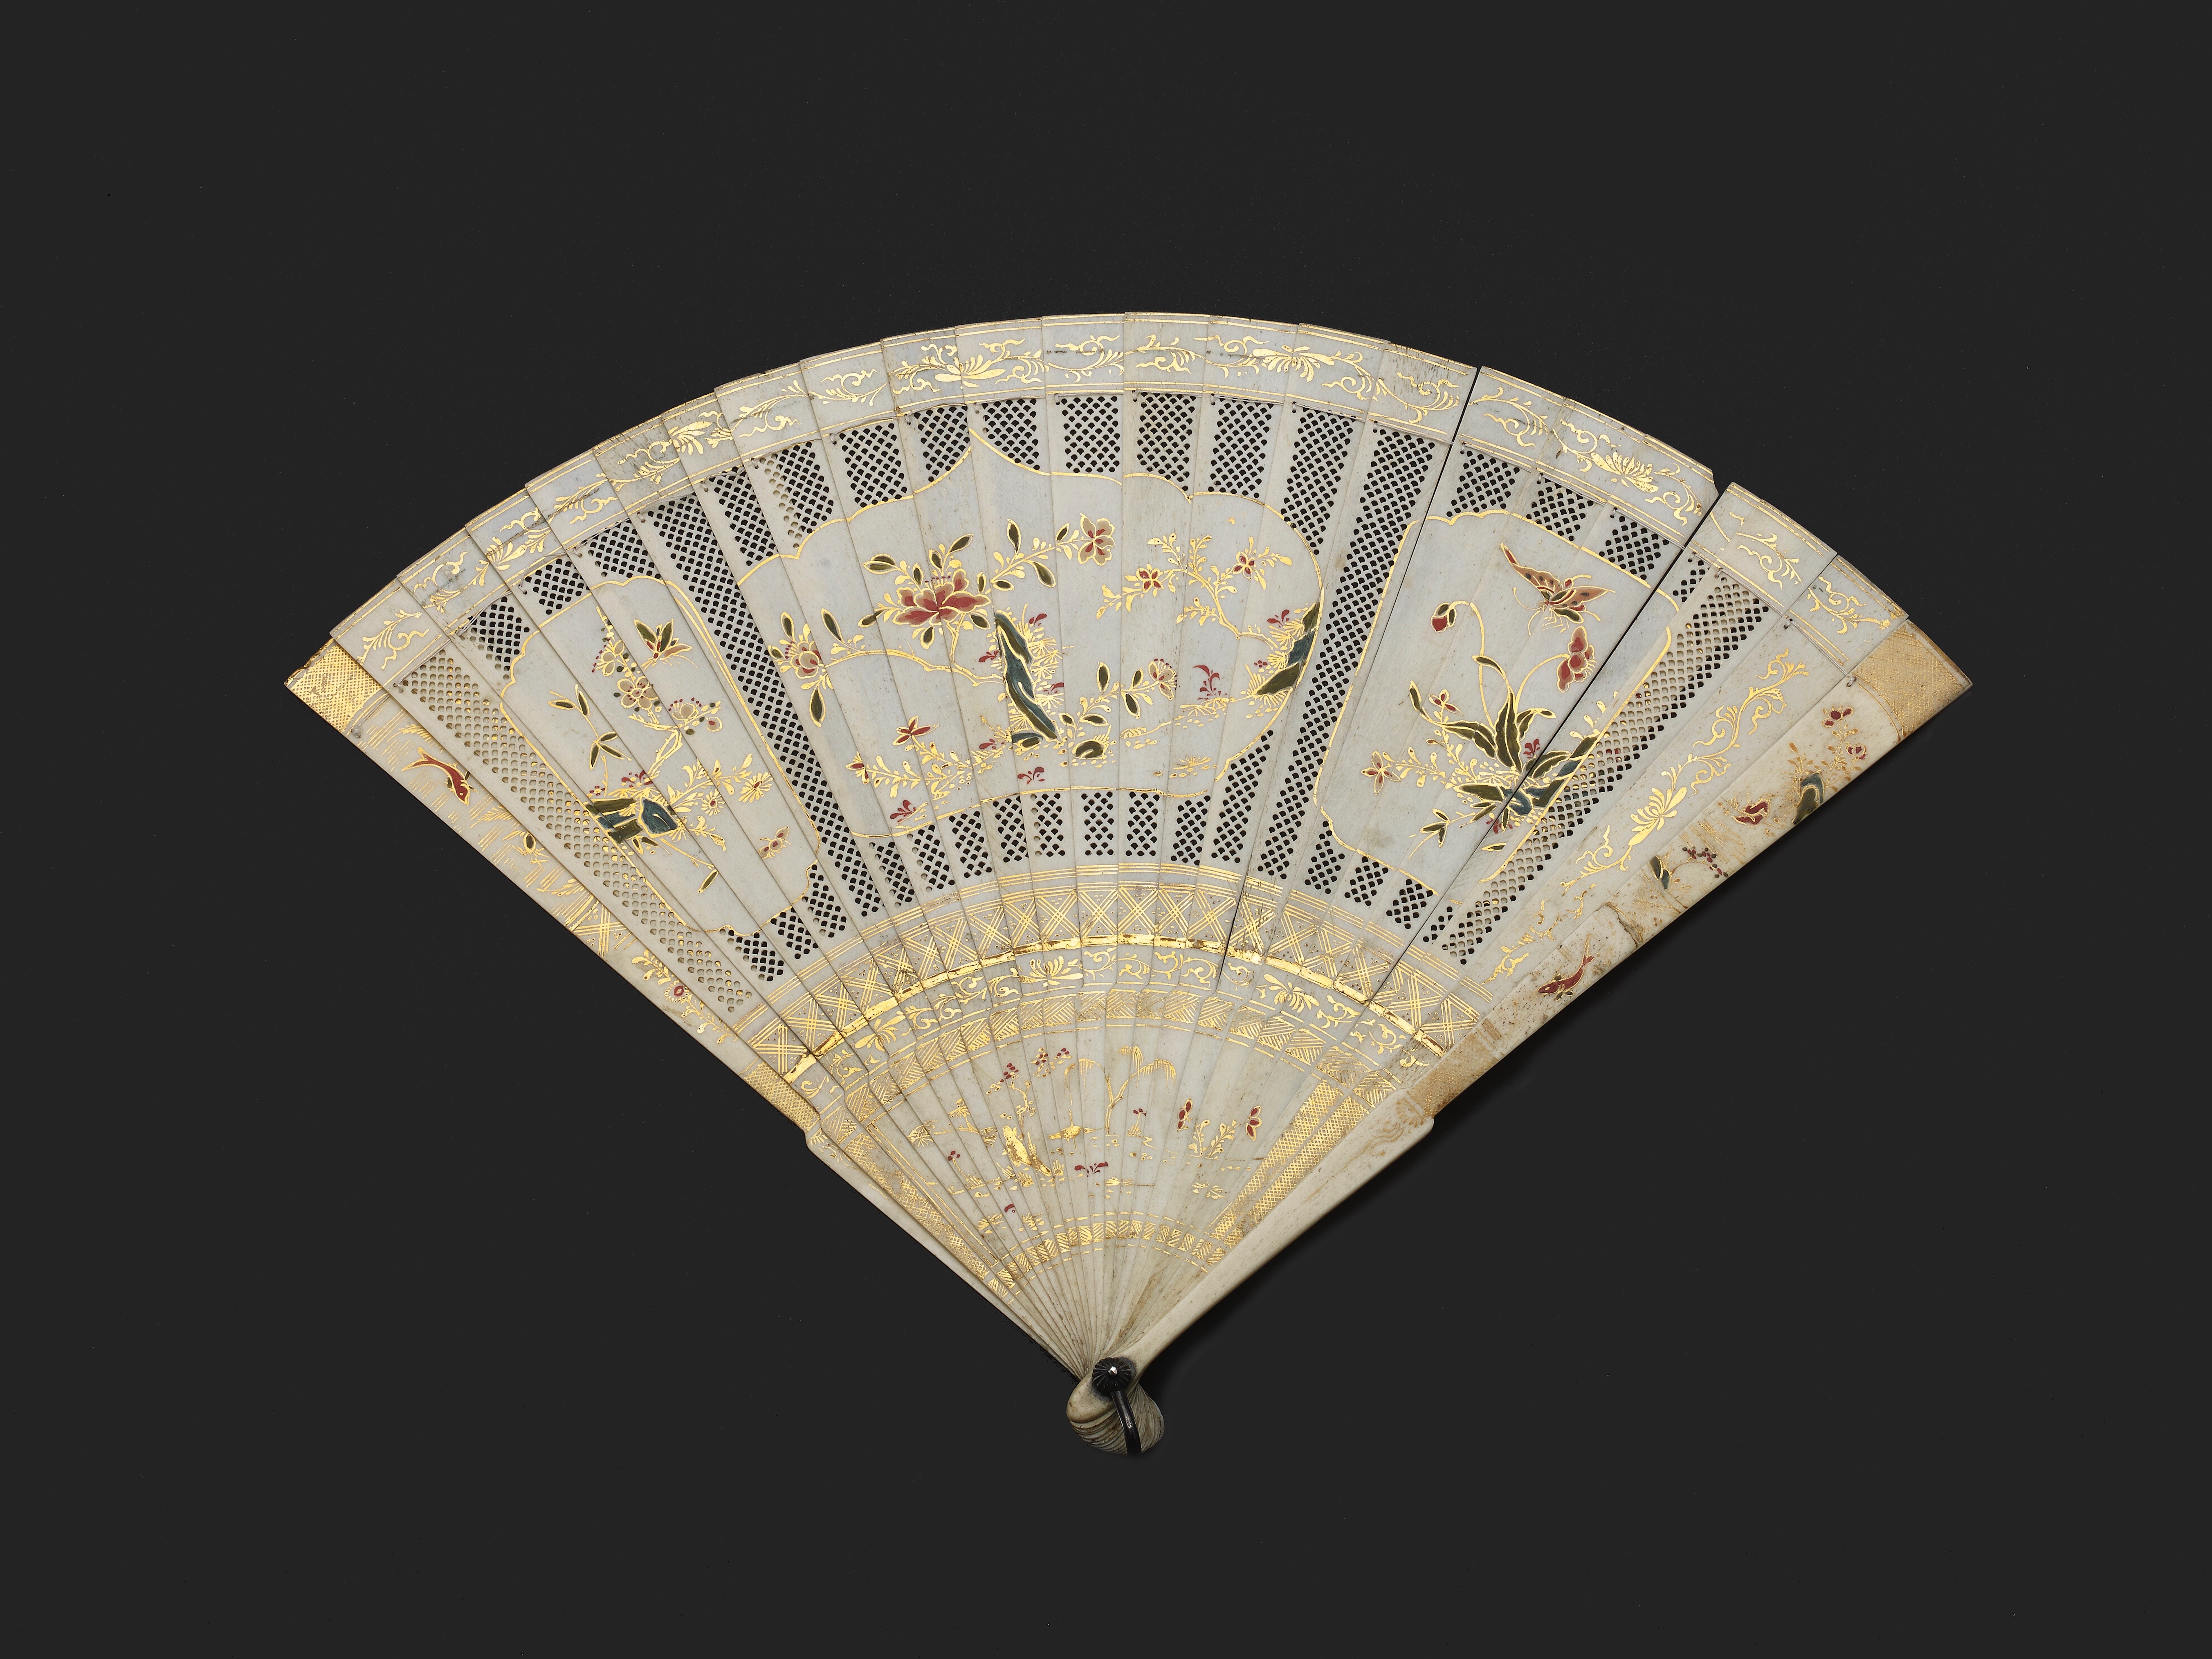 Lot 11 - A CHINESE EXPORT PIERCED AND PAINTED IVORY FAN, QING DYNASTY, KANGXI PERIOD, CIRCA 1710-22